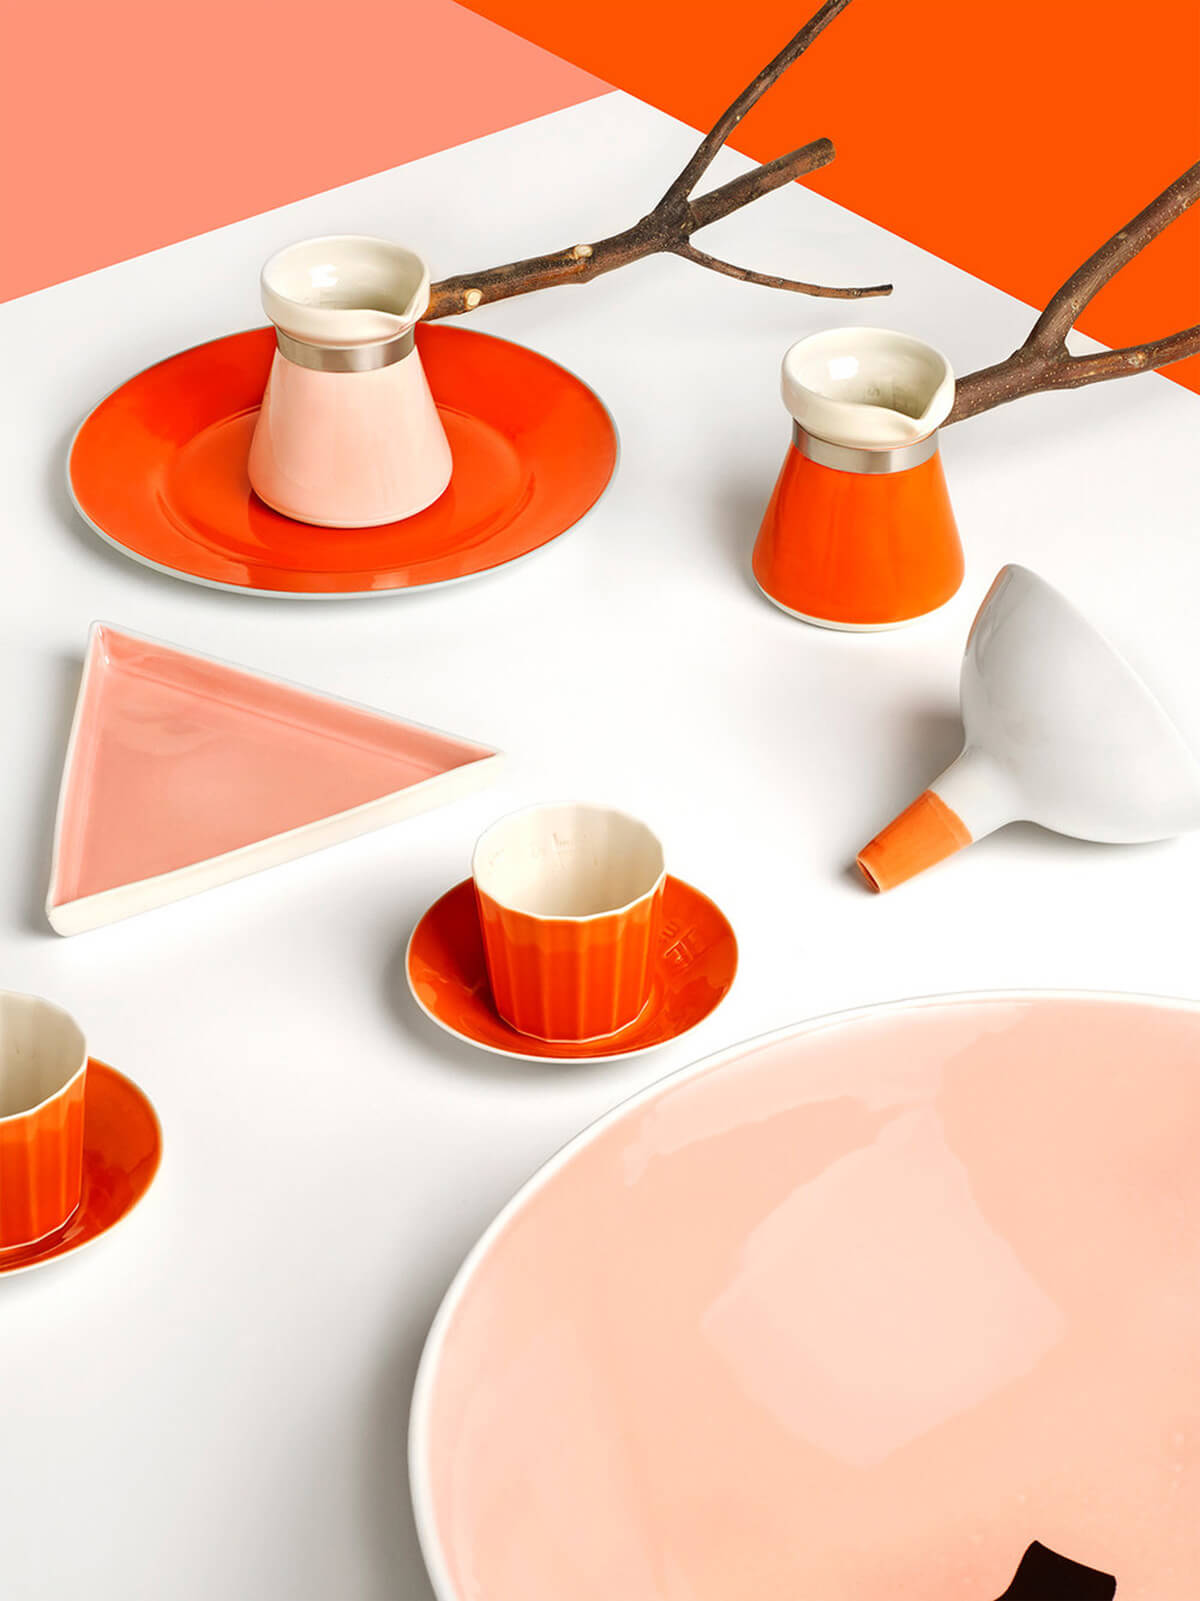 Santimetre Studio's colourful porcelain tableware collection | Made in Turkey: Curated by Arhan Kayar | STIRworld